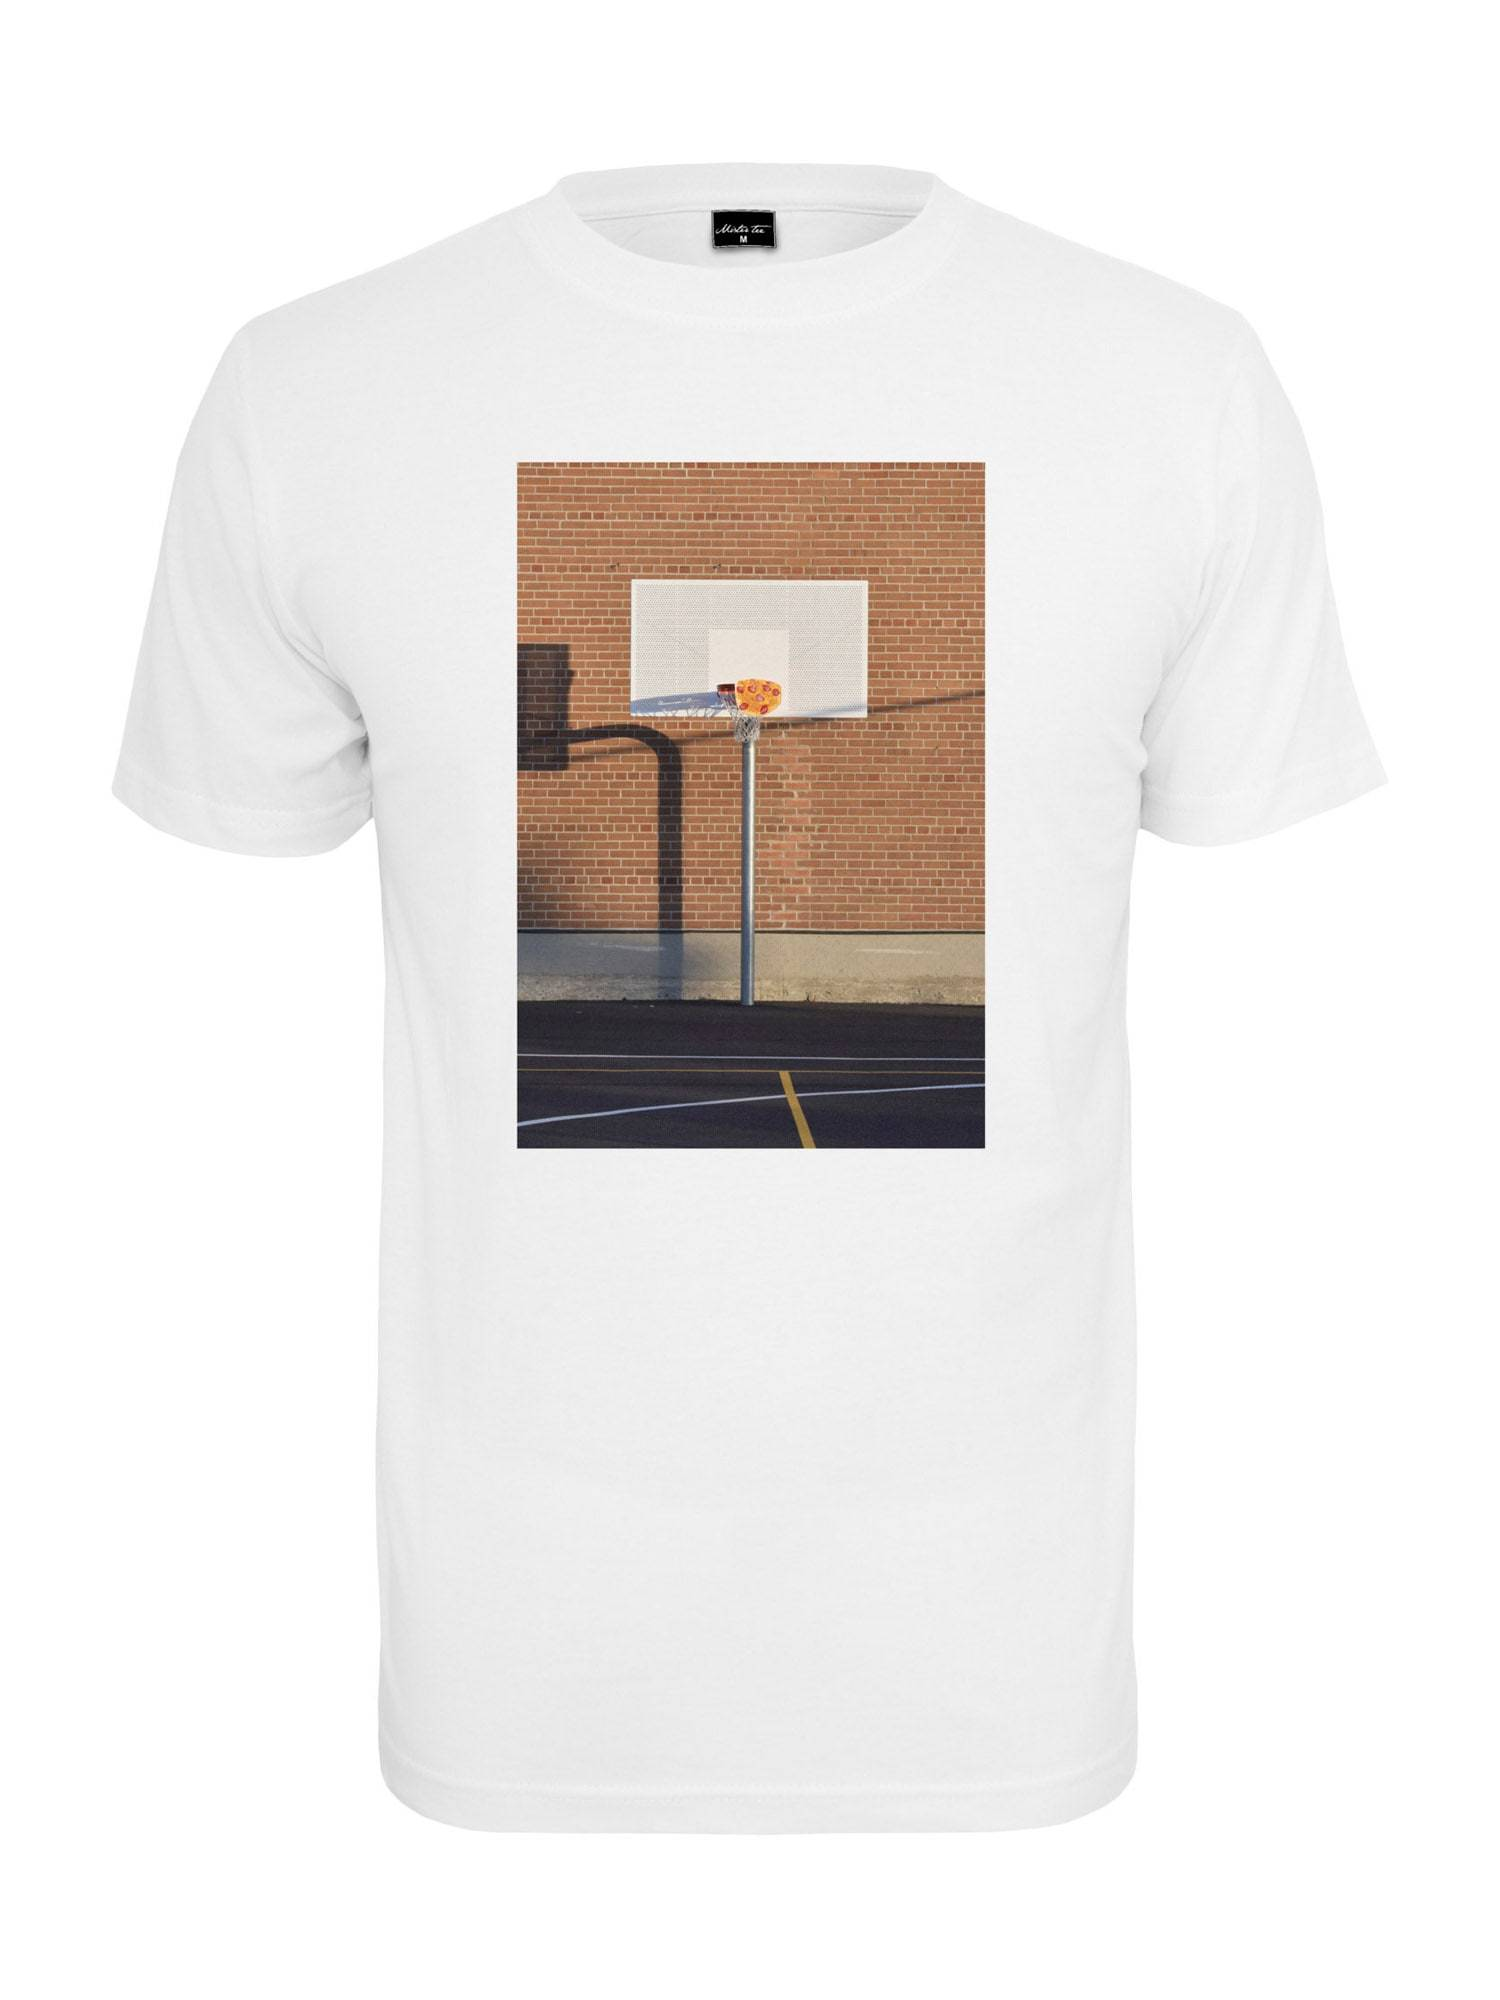 Tee T-Shirt 'Pizza Basketball Court'  - Blanc - Taille: XS - male